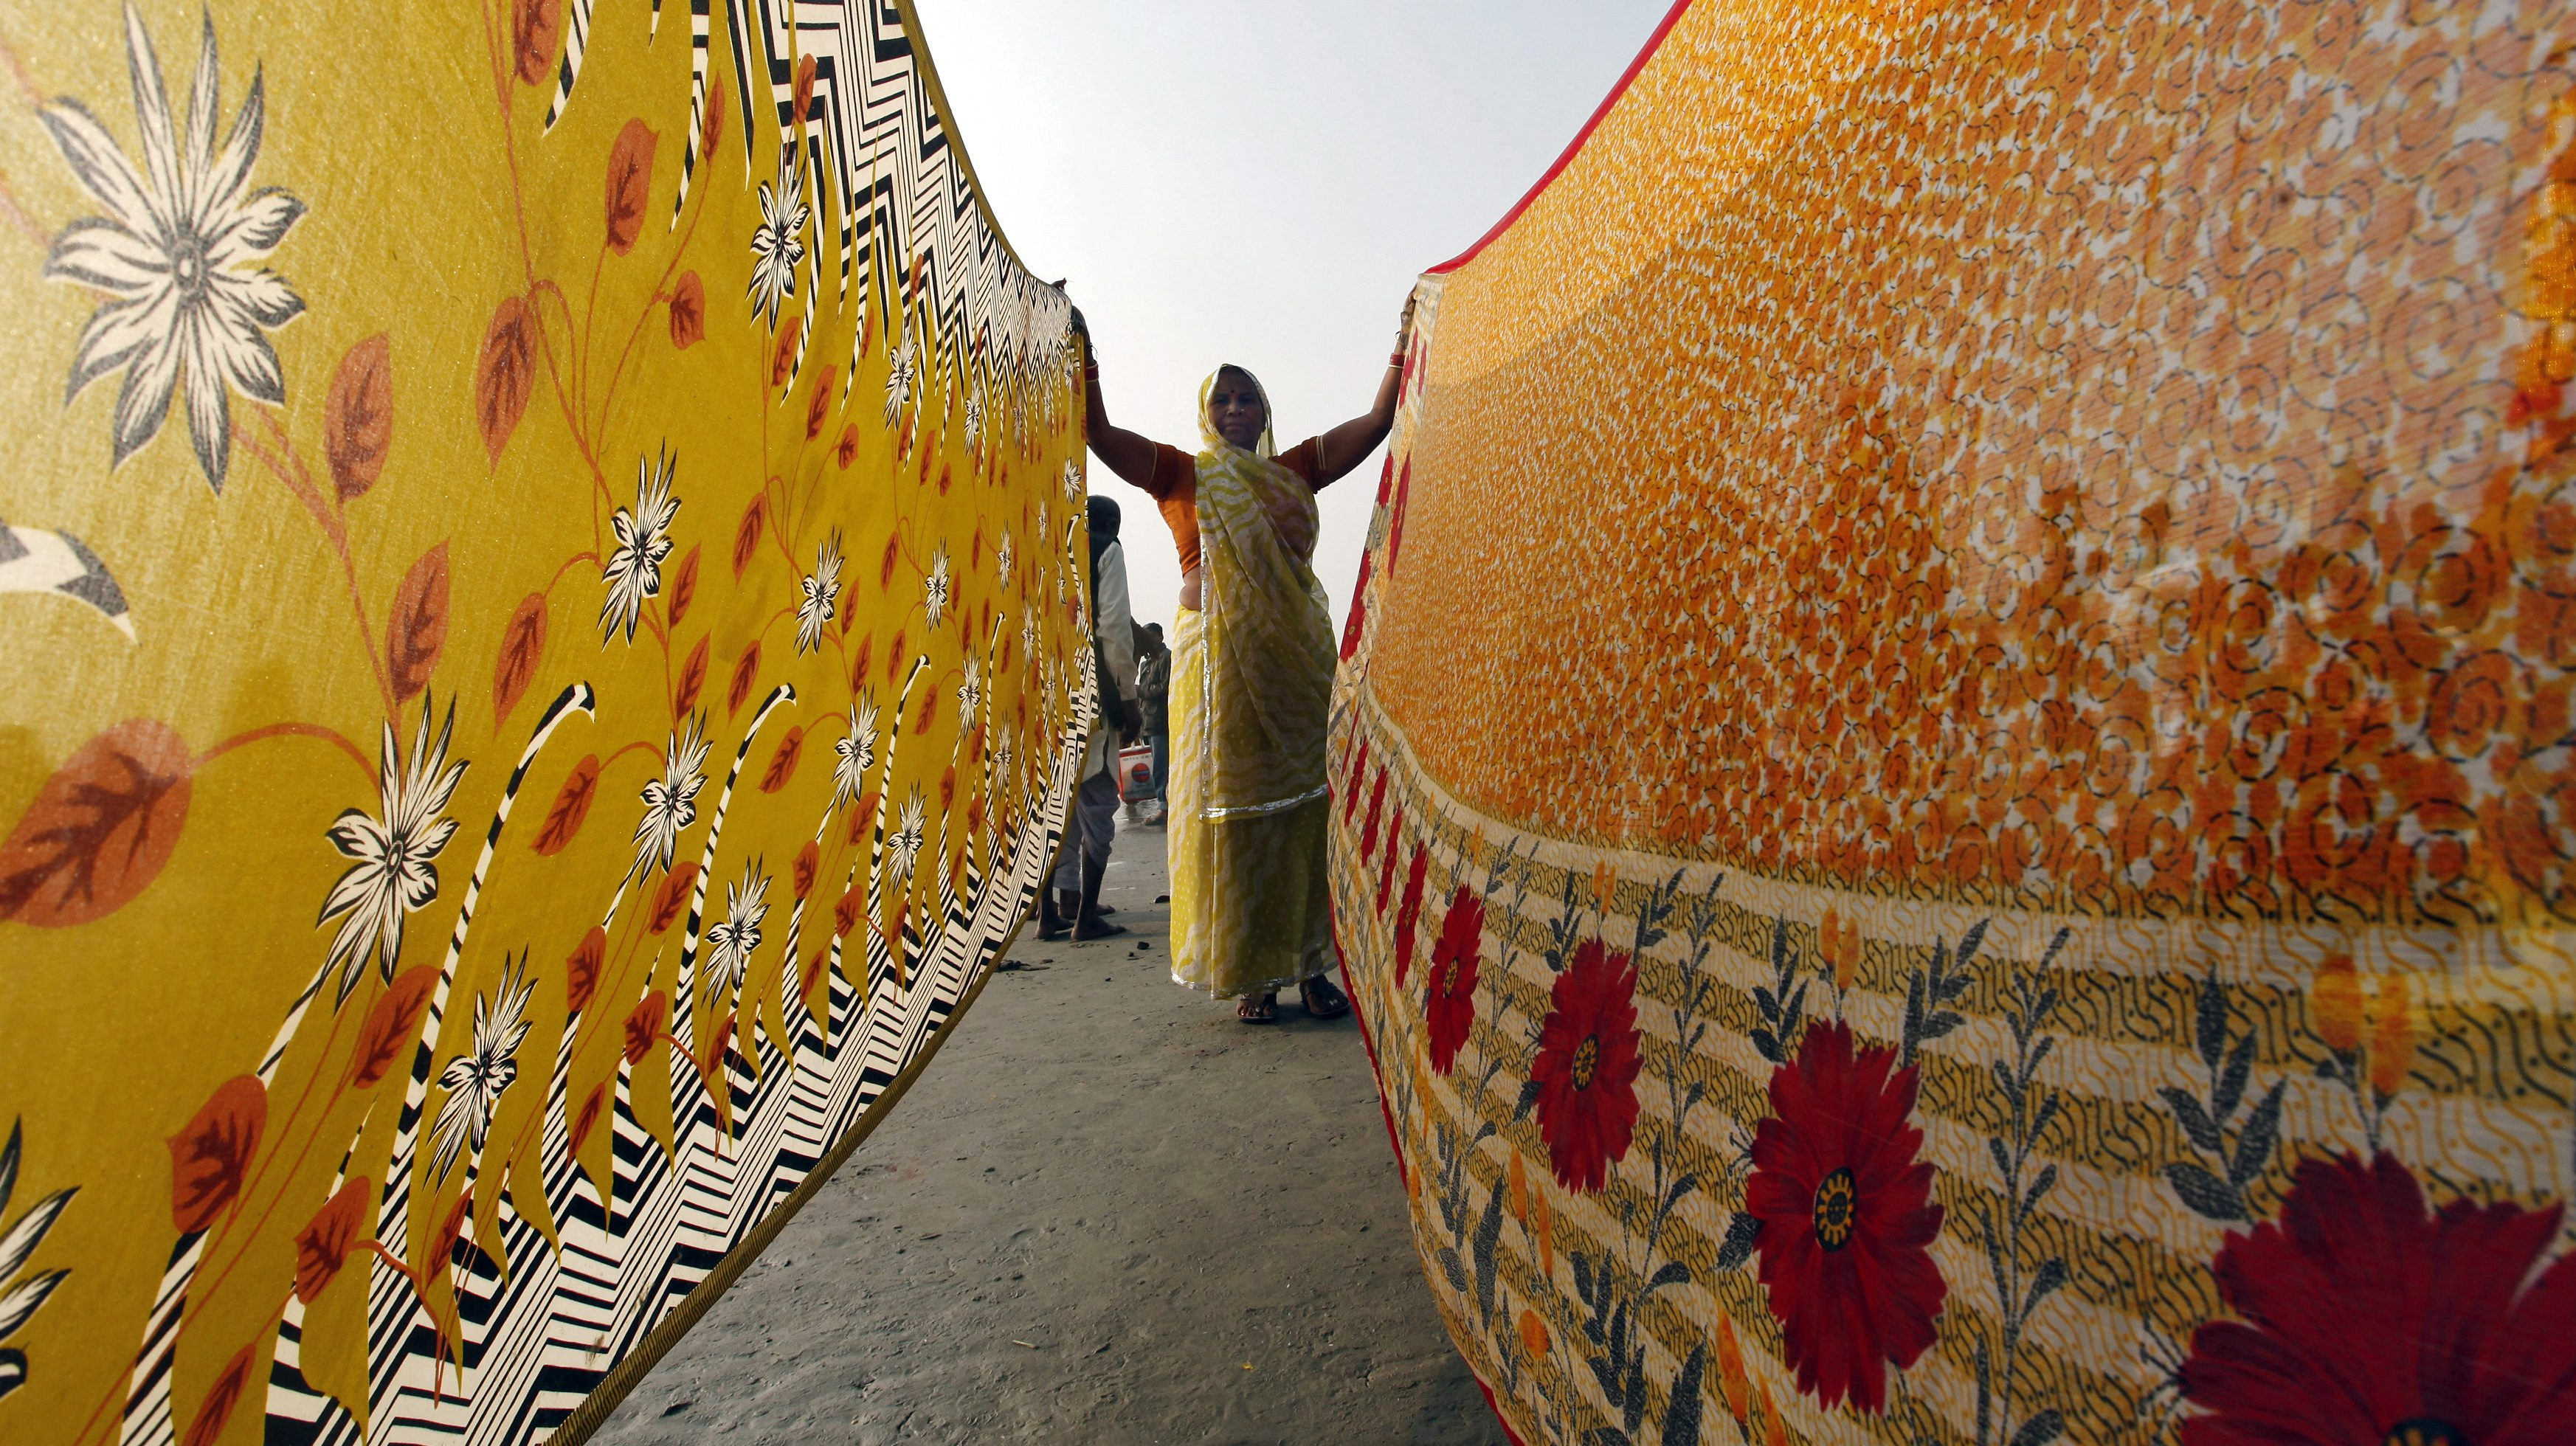 A female Hindu pilgrim dries sarees after taking a dip at the confluence of the Ganges river and the Bay of Bengal at Sagar Island, south of Kolkata.